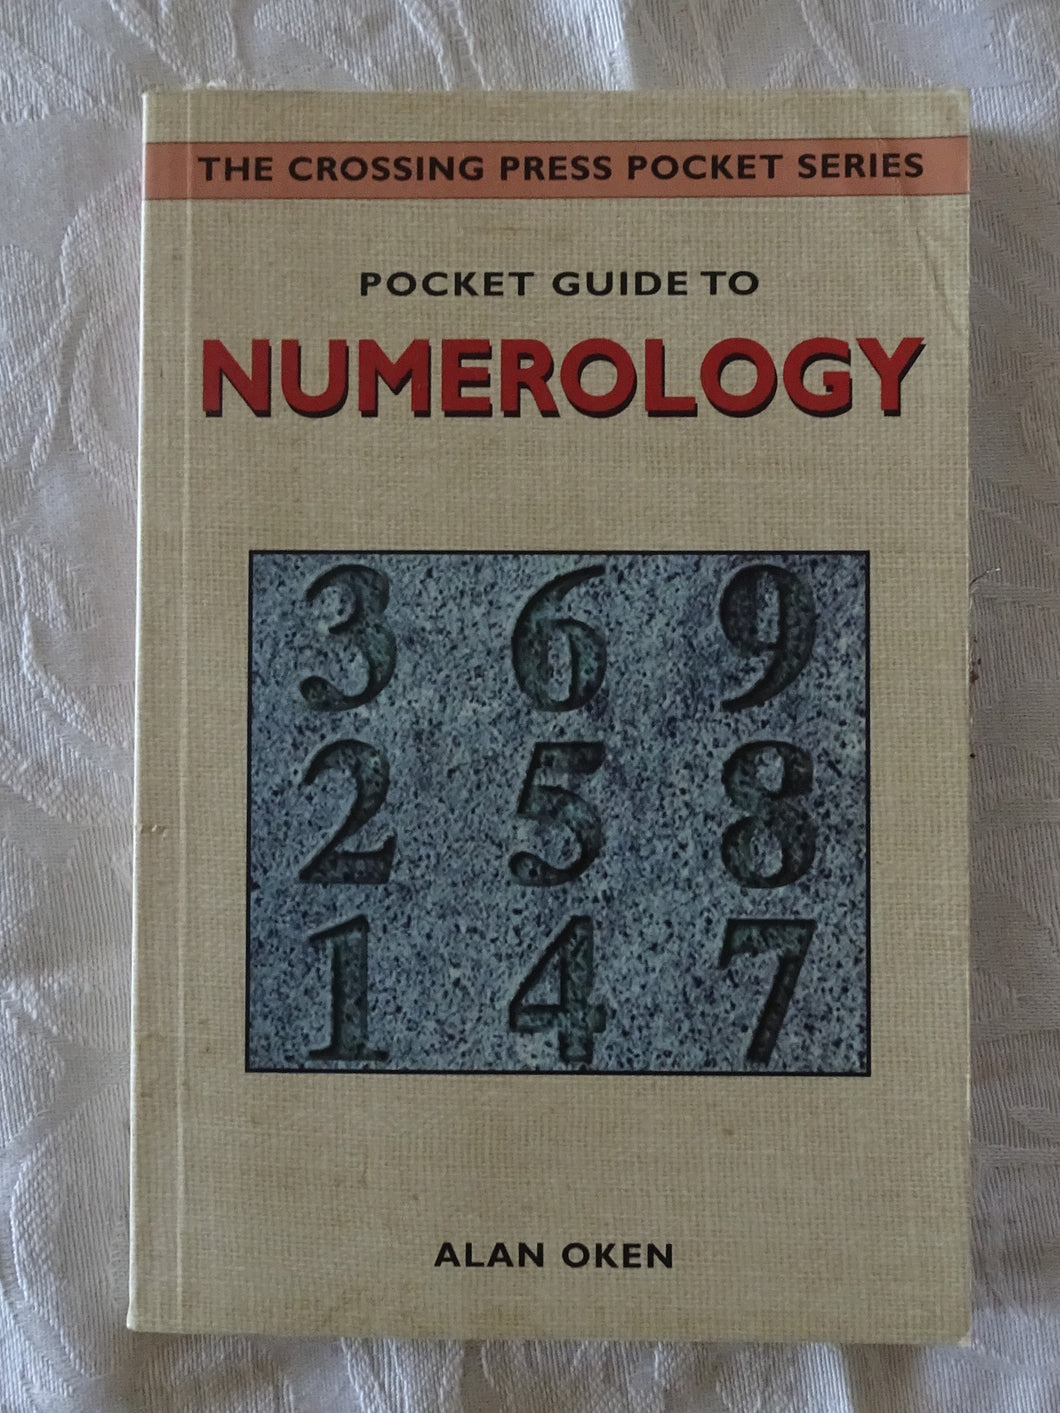 Pocket Guide To Numerology by Alan Oken